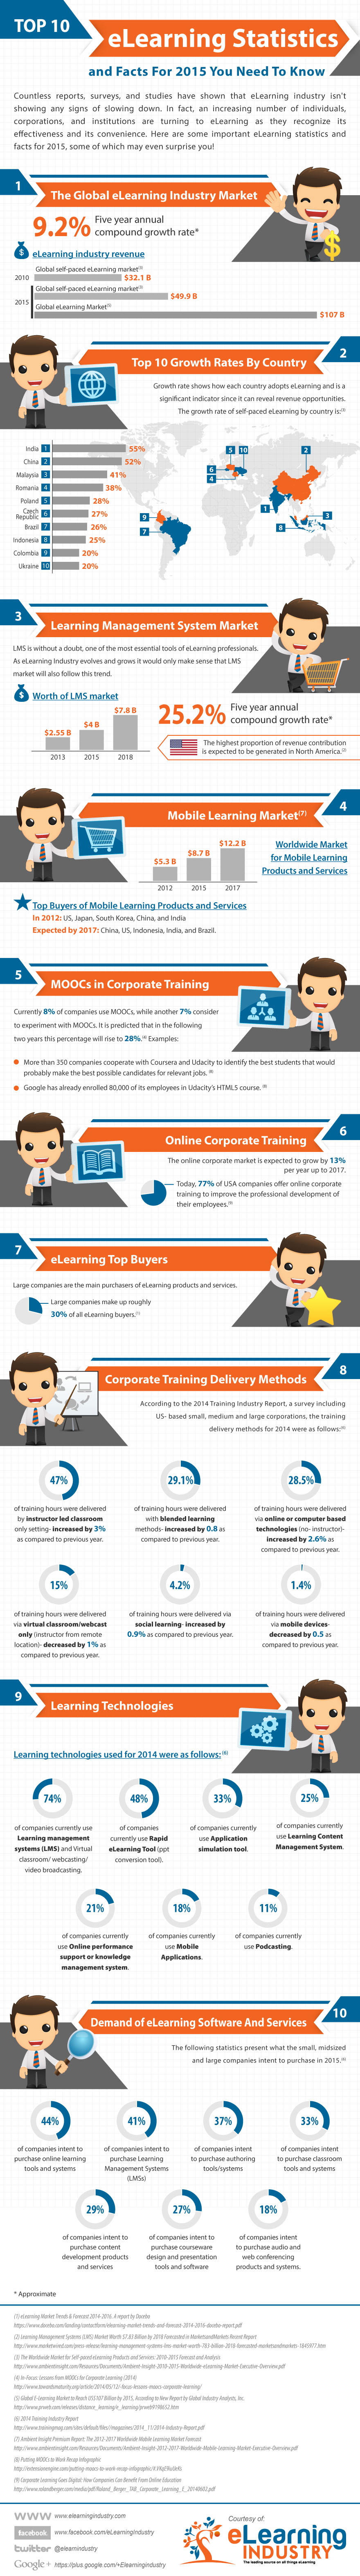 Source: http://elearninginfographics.com/top-elearning-stats-and-facts-for-2015-infographic/?utm_campaign=elearningindustry.com&utm_source=%2Felearning-statistics-and-facts-for-2015&utm_medium=link